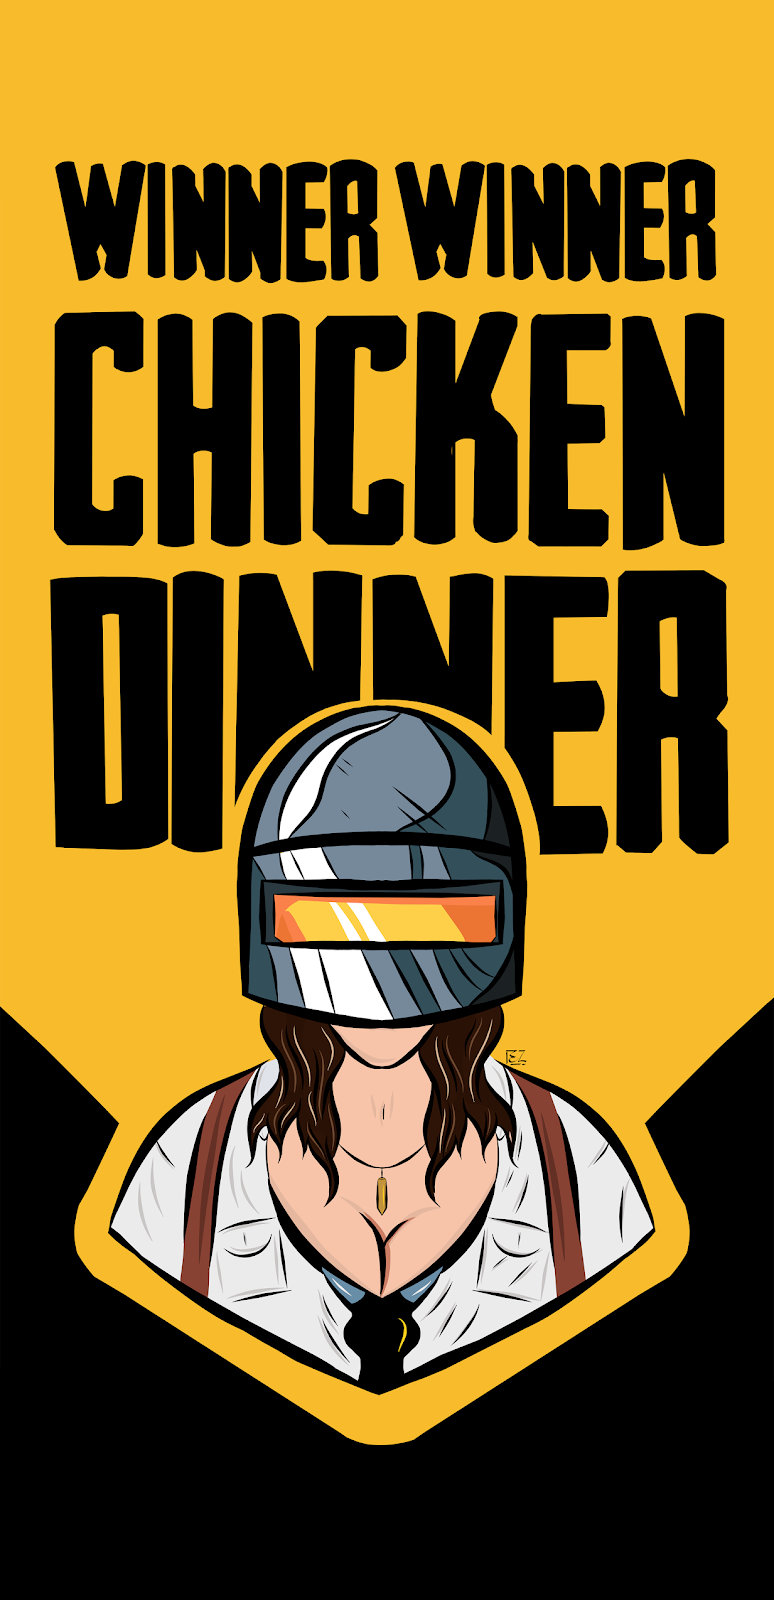 Winner Winner Chicken Dinner pubg wallpaper